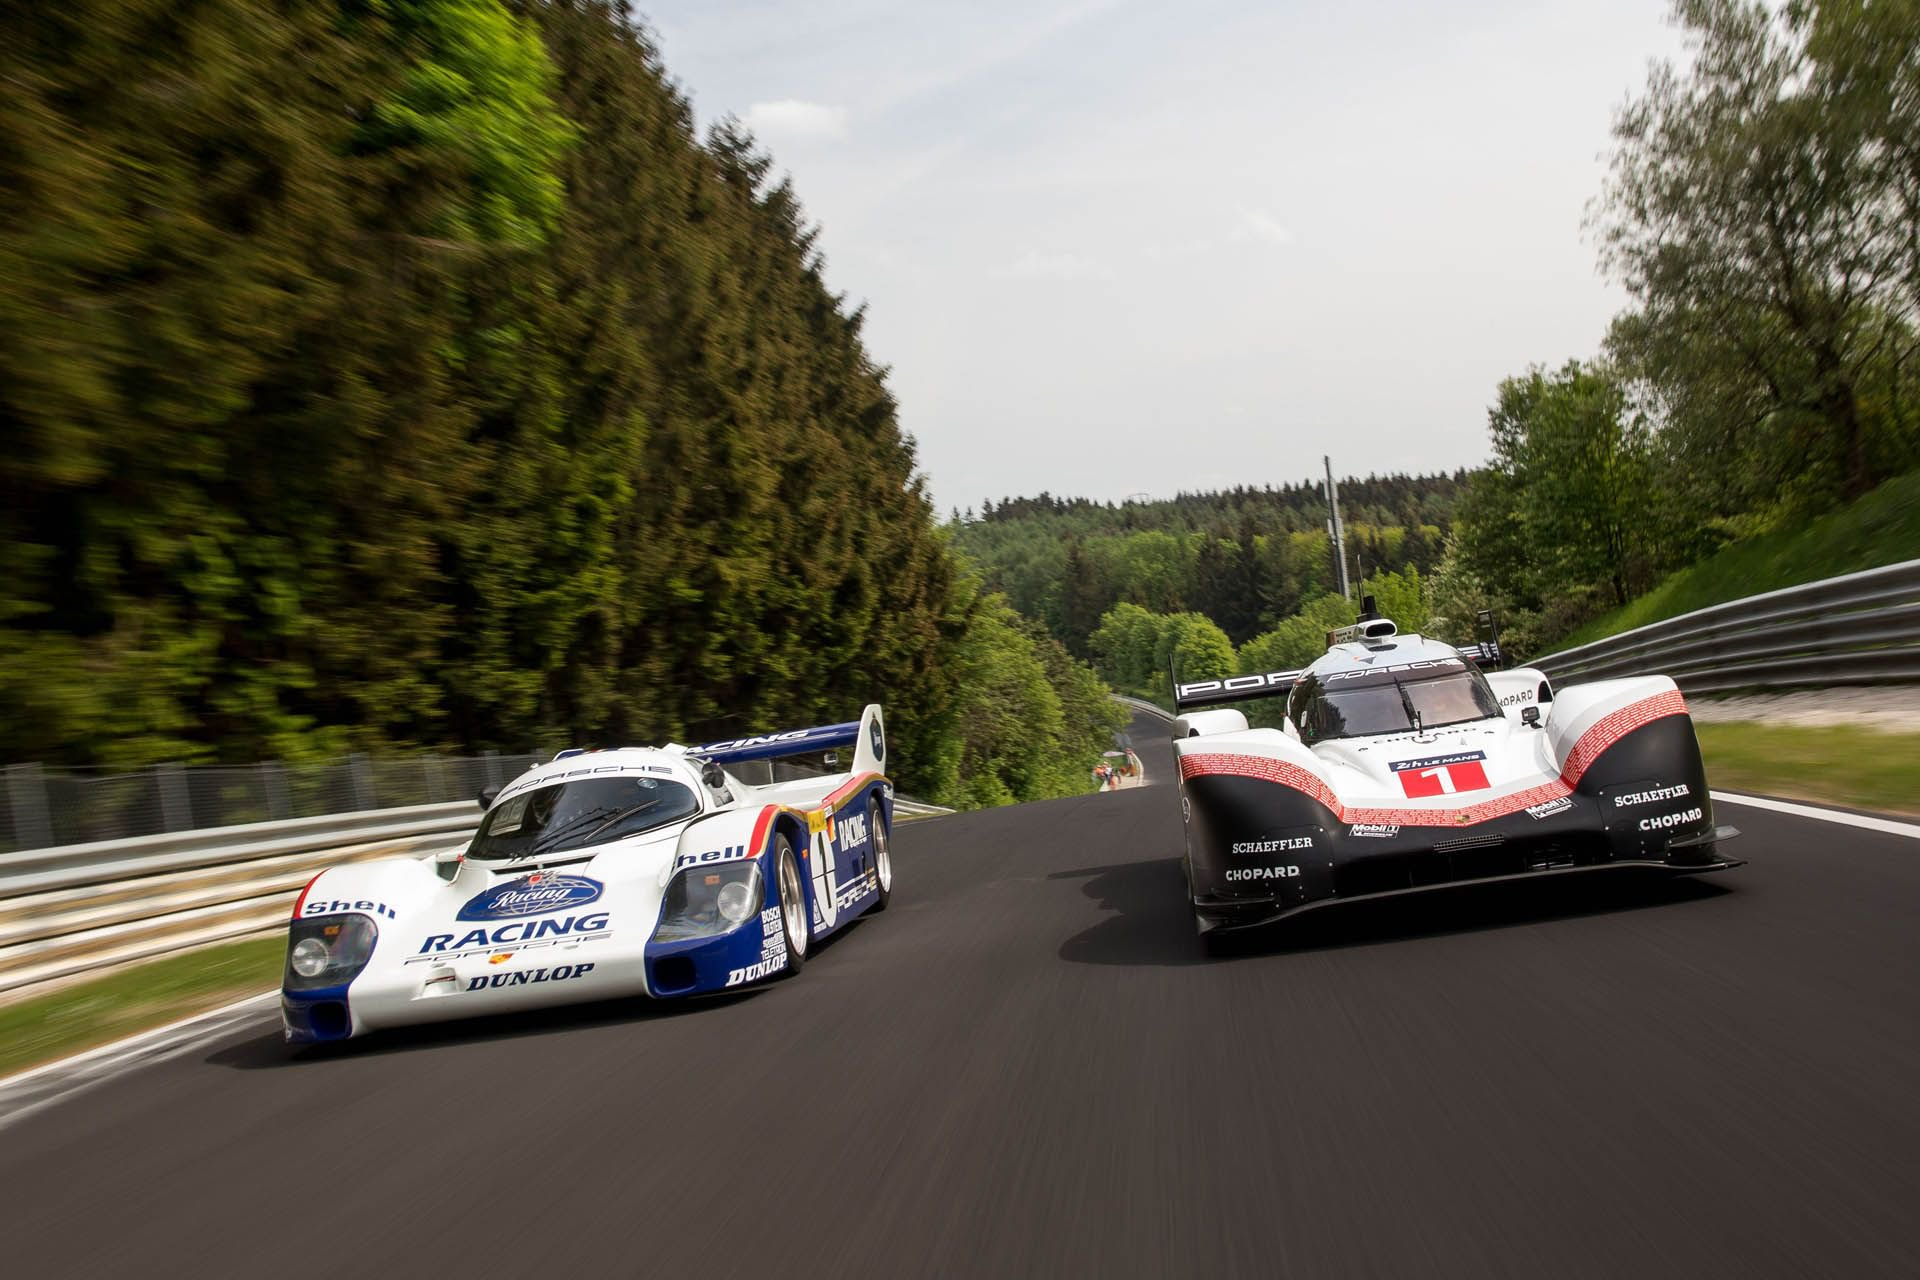 Porsche 919 Hybrid Evo and 956 at Nurburgring (14)